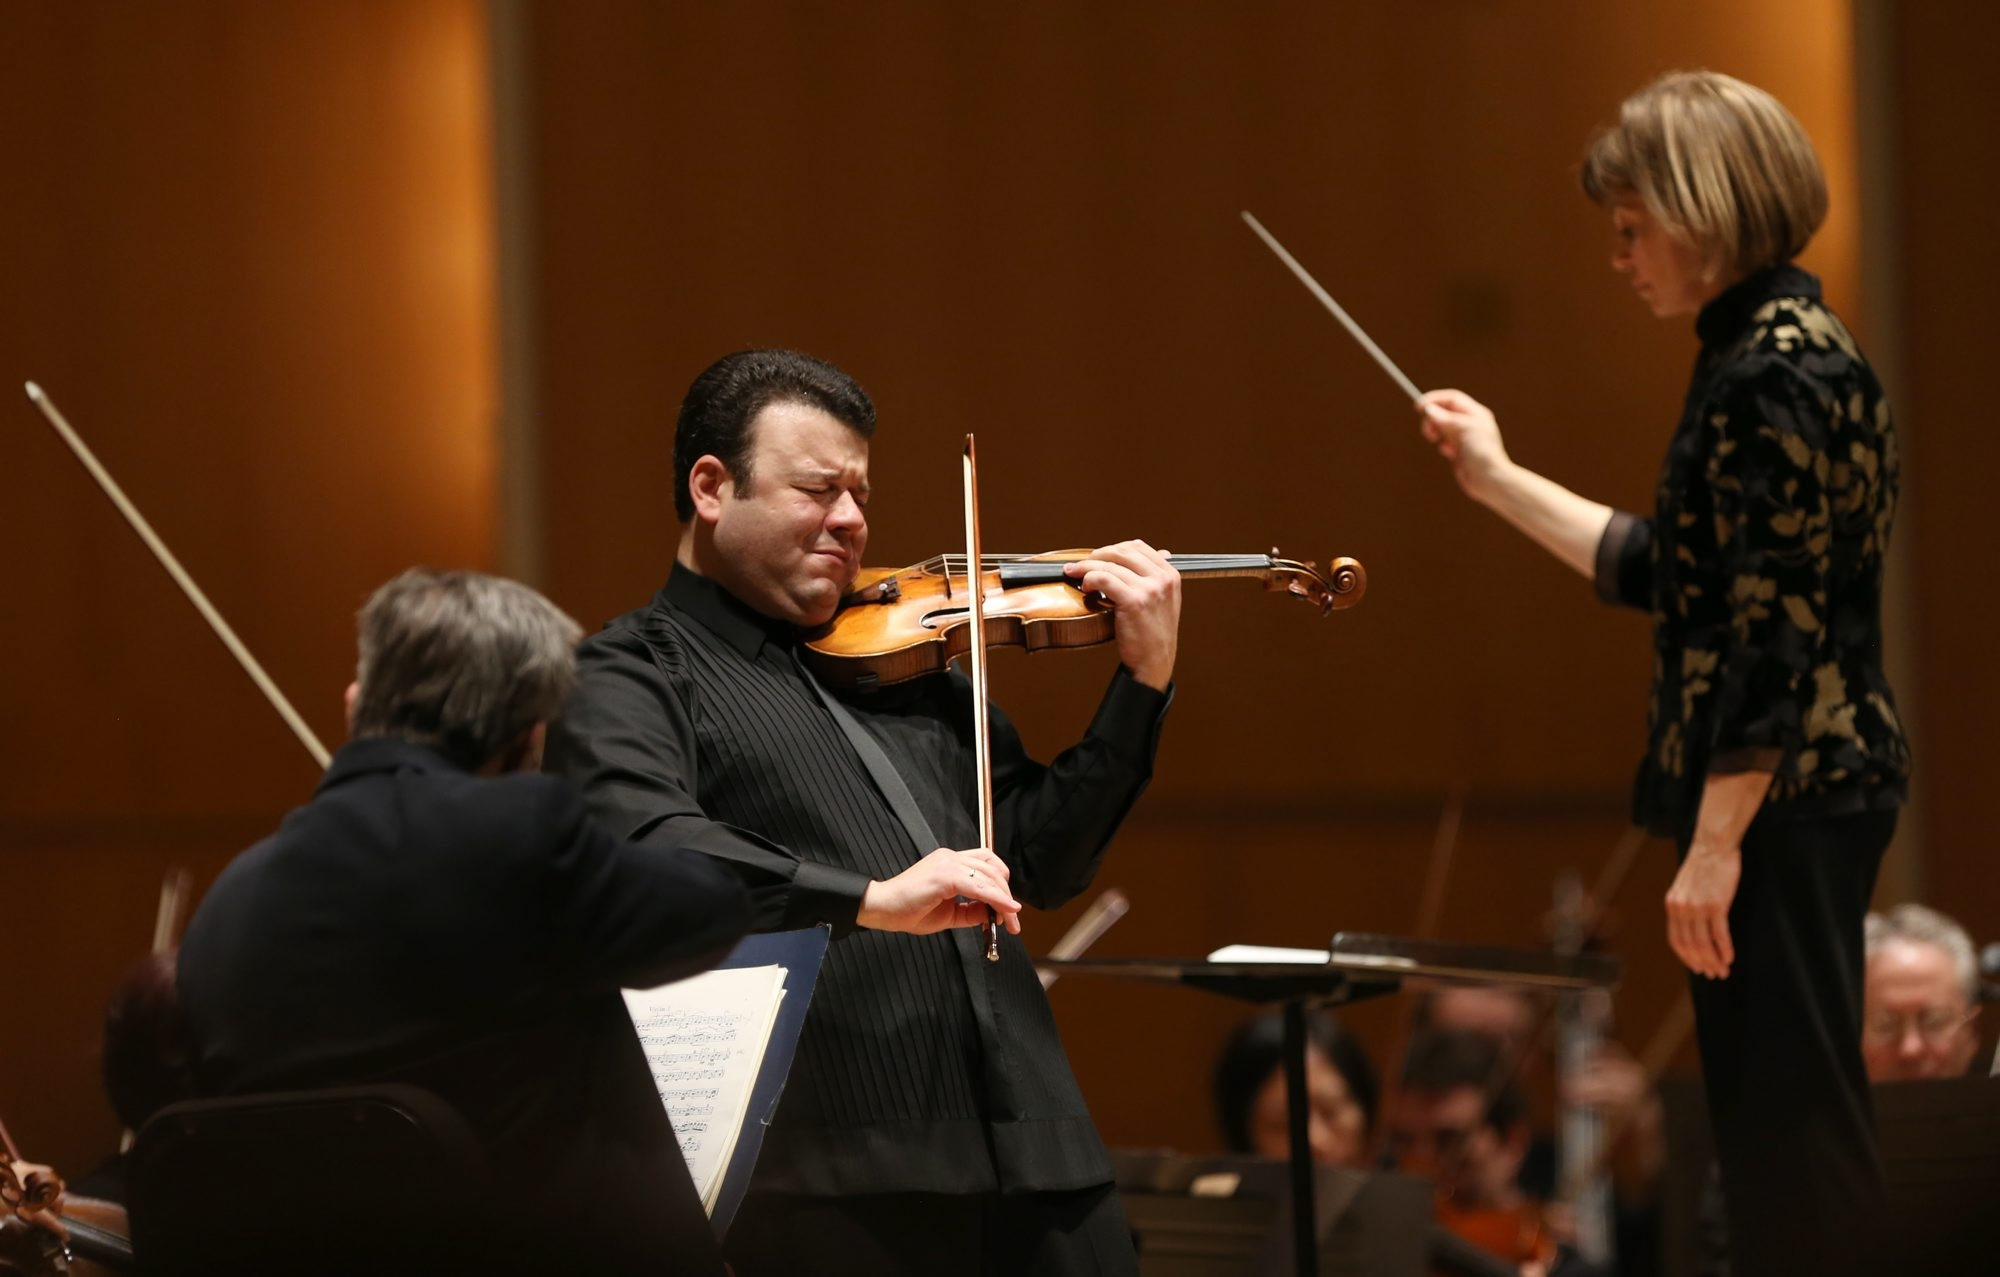 Violin virtuoso Vadim Gluzman, left, performs as conductor JoAnn Falletta leads the Buffalo Philharmonic Orchestra in a special Brahms concert Friday at Kleinhans.